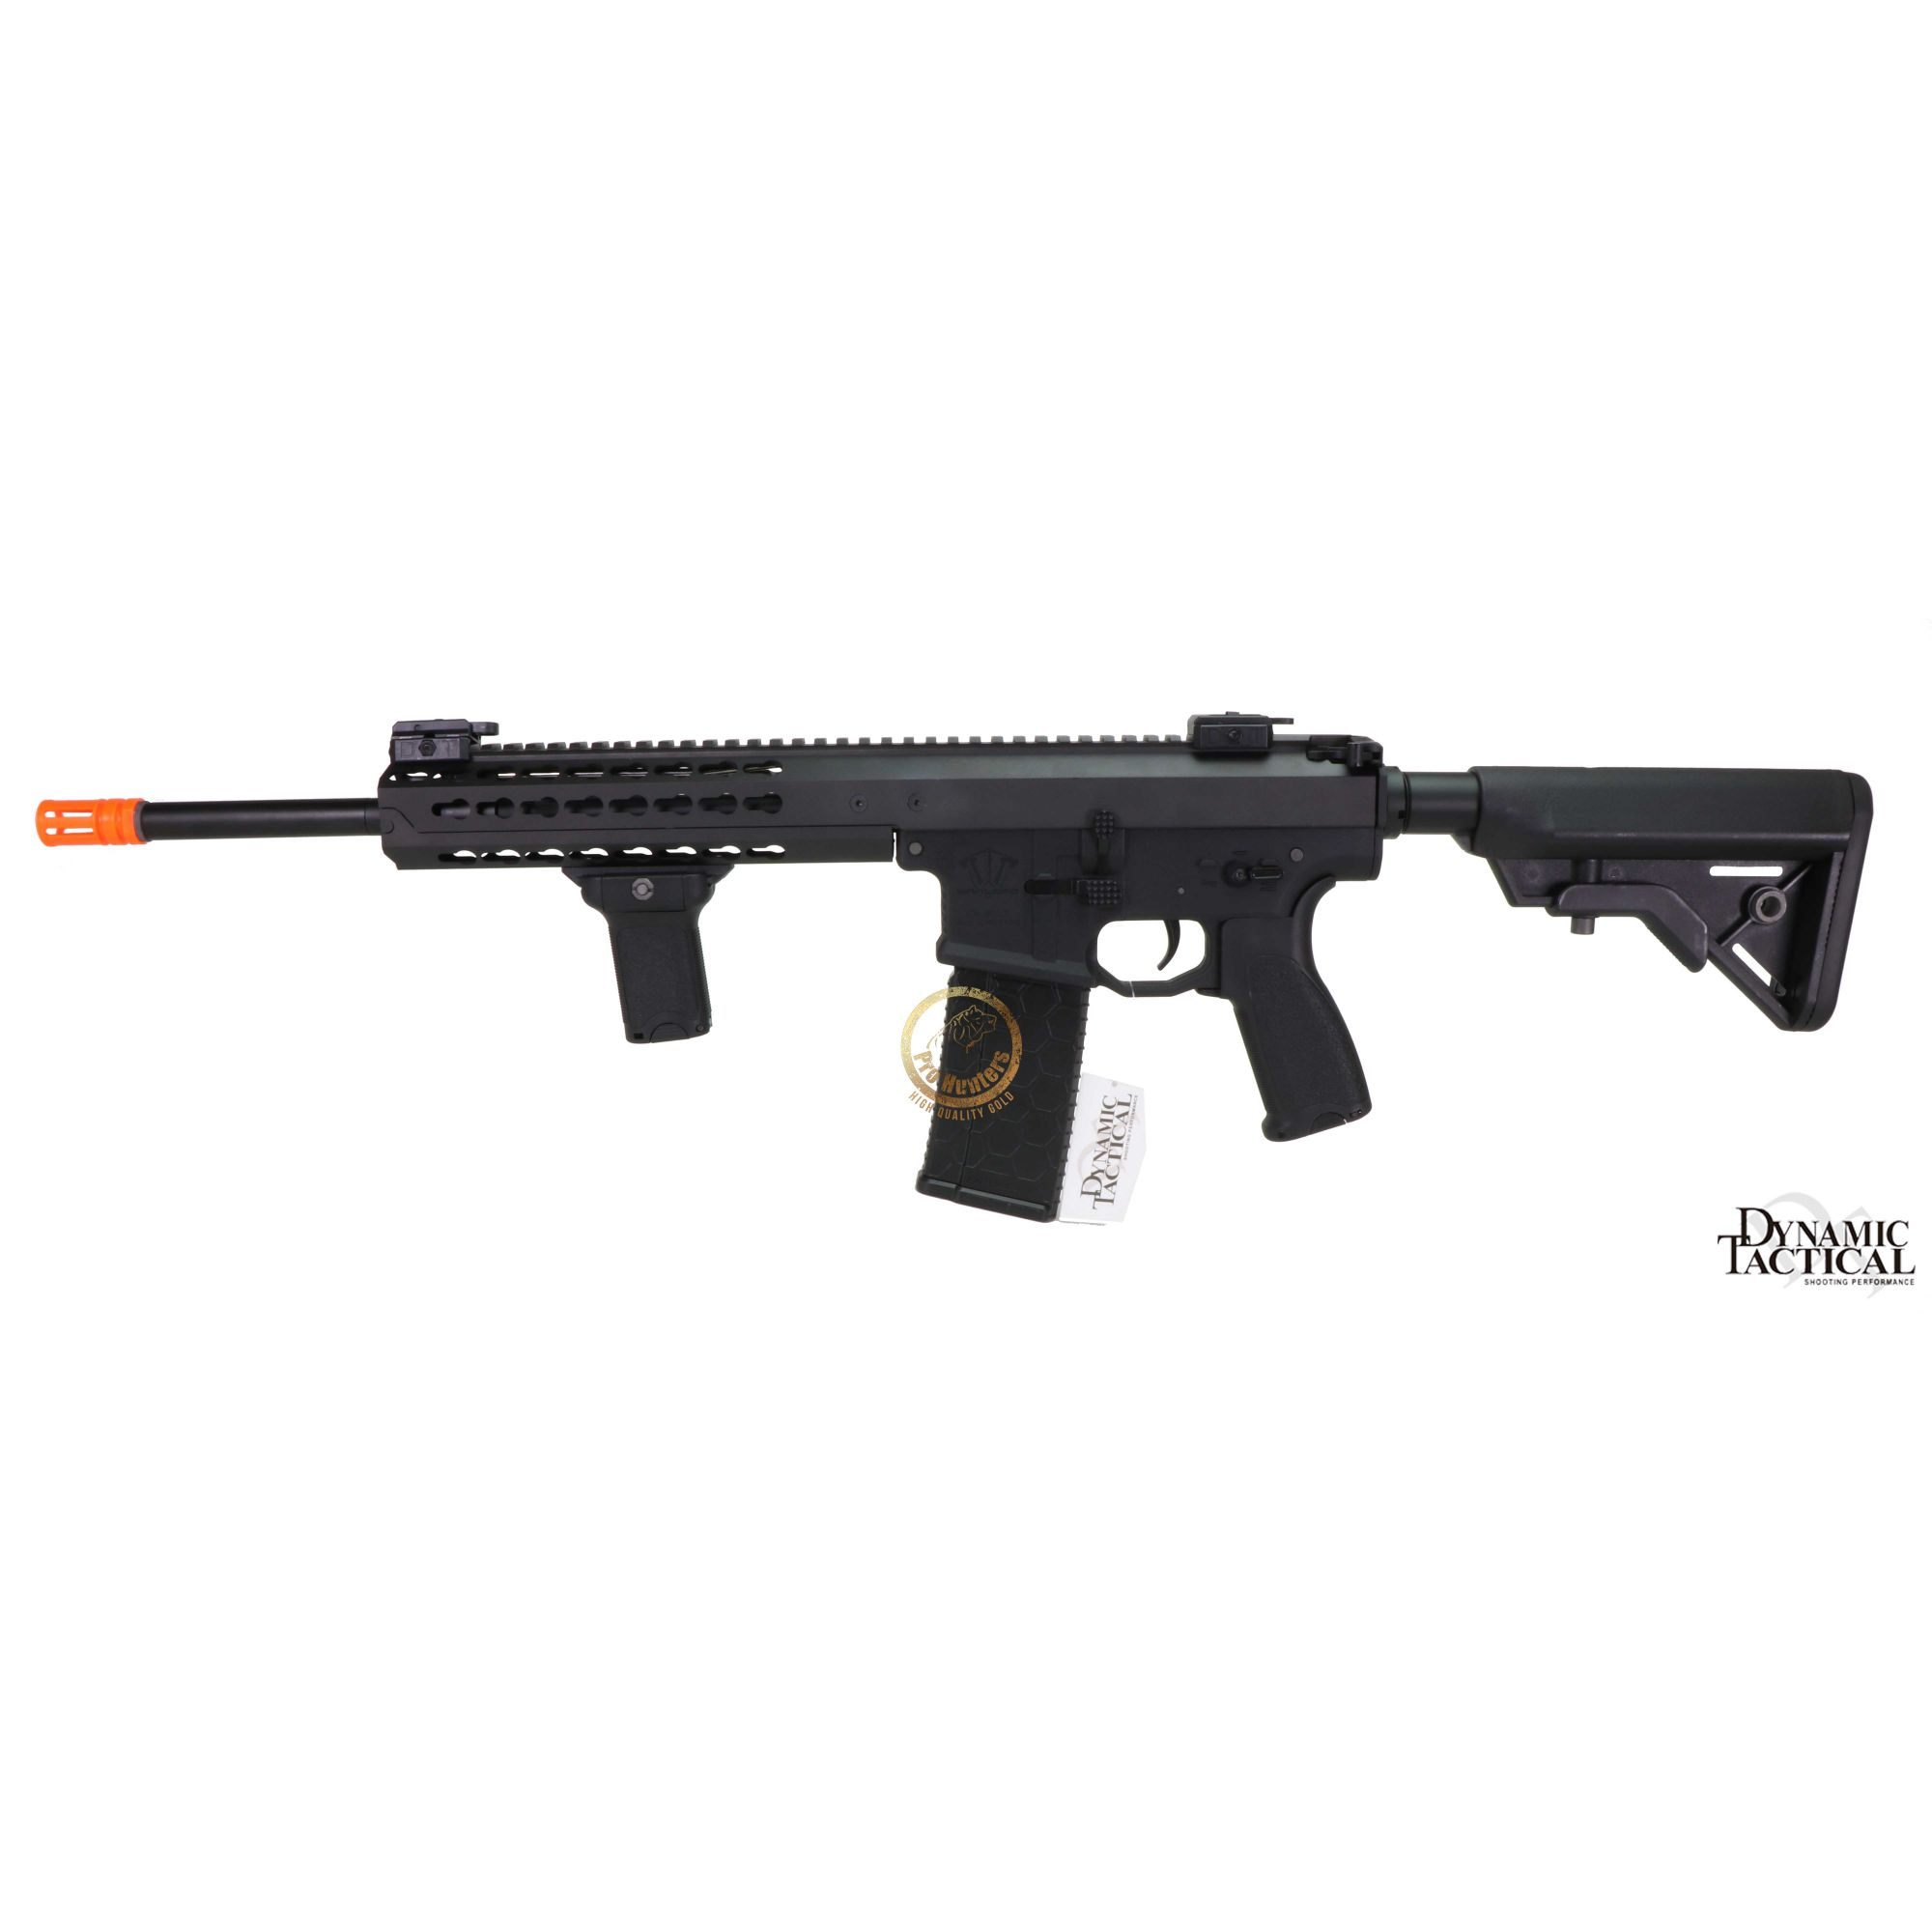 Rifle Airsoft Dytac Warlord Carbine Type B - Black